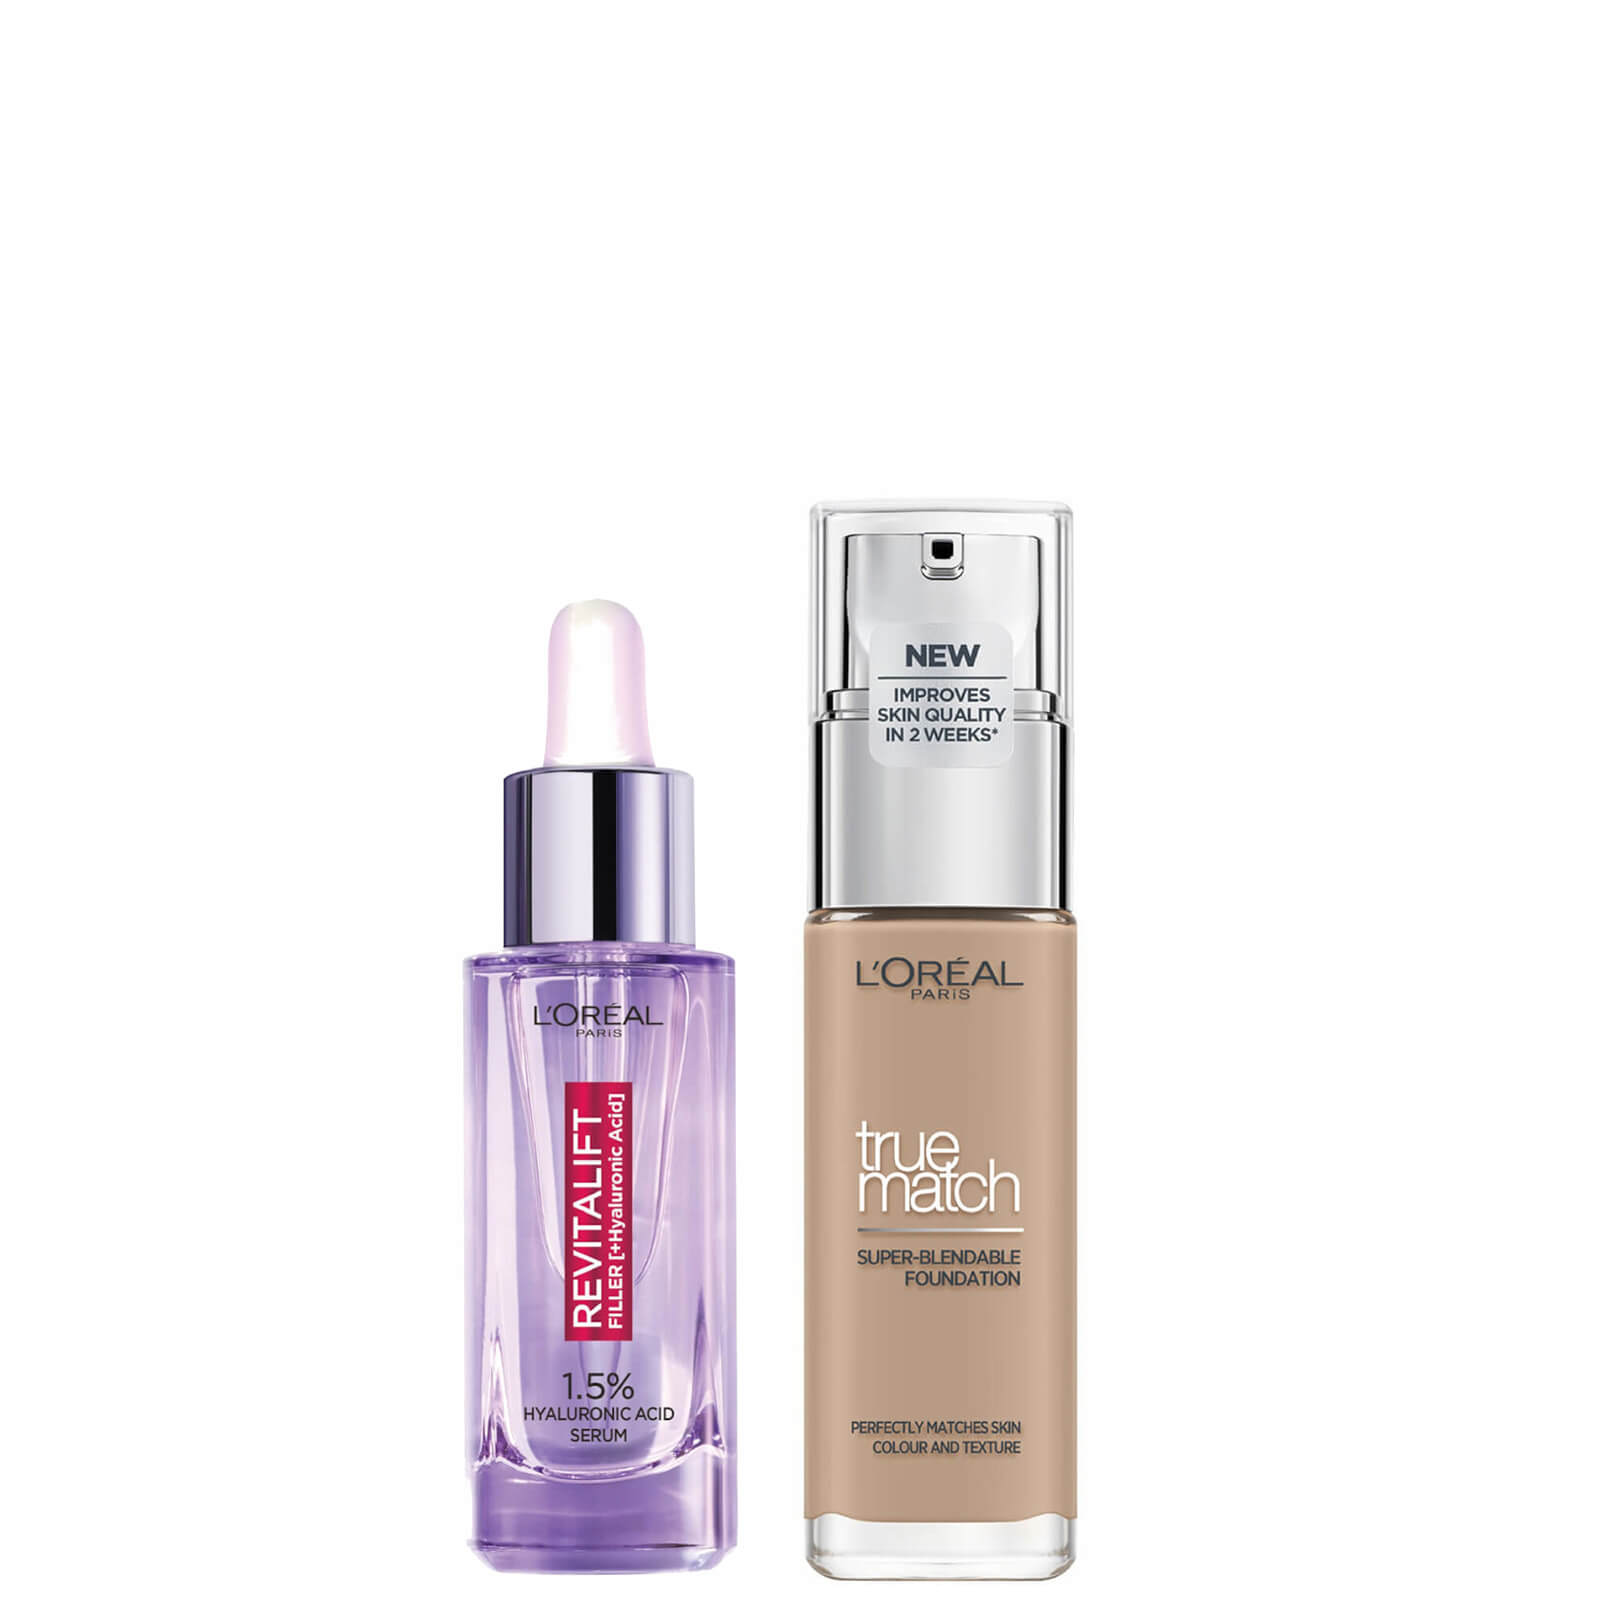 L'Oreal Paris Hyaluronic Acid Filler Serum and True Match Hyaluronic Acid Foundation Duo (Various Shades) - 4N Beige